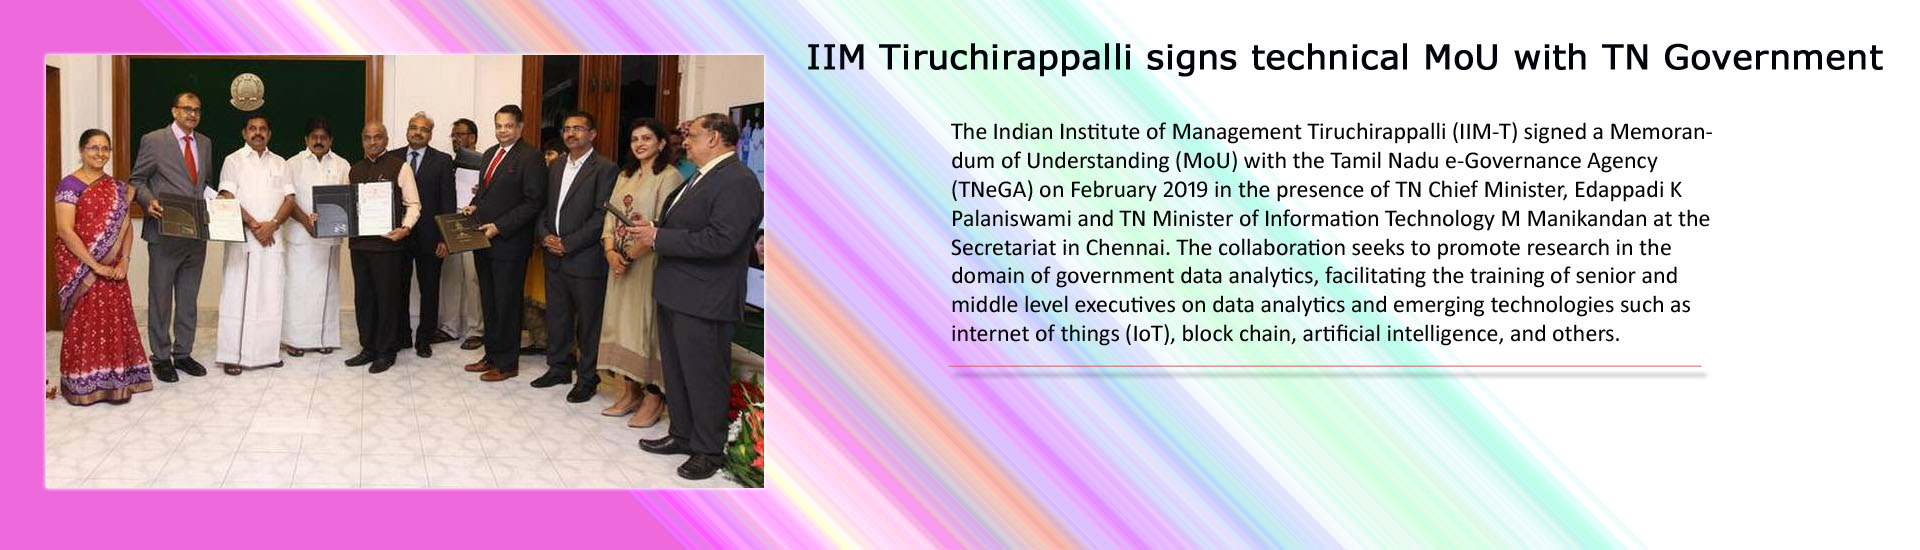 IIM Trichy signs technical MoU with TN Govt